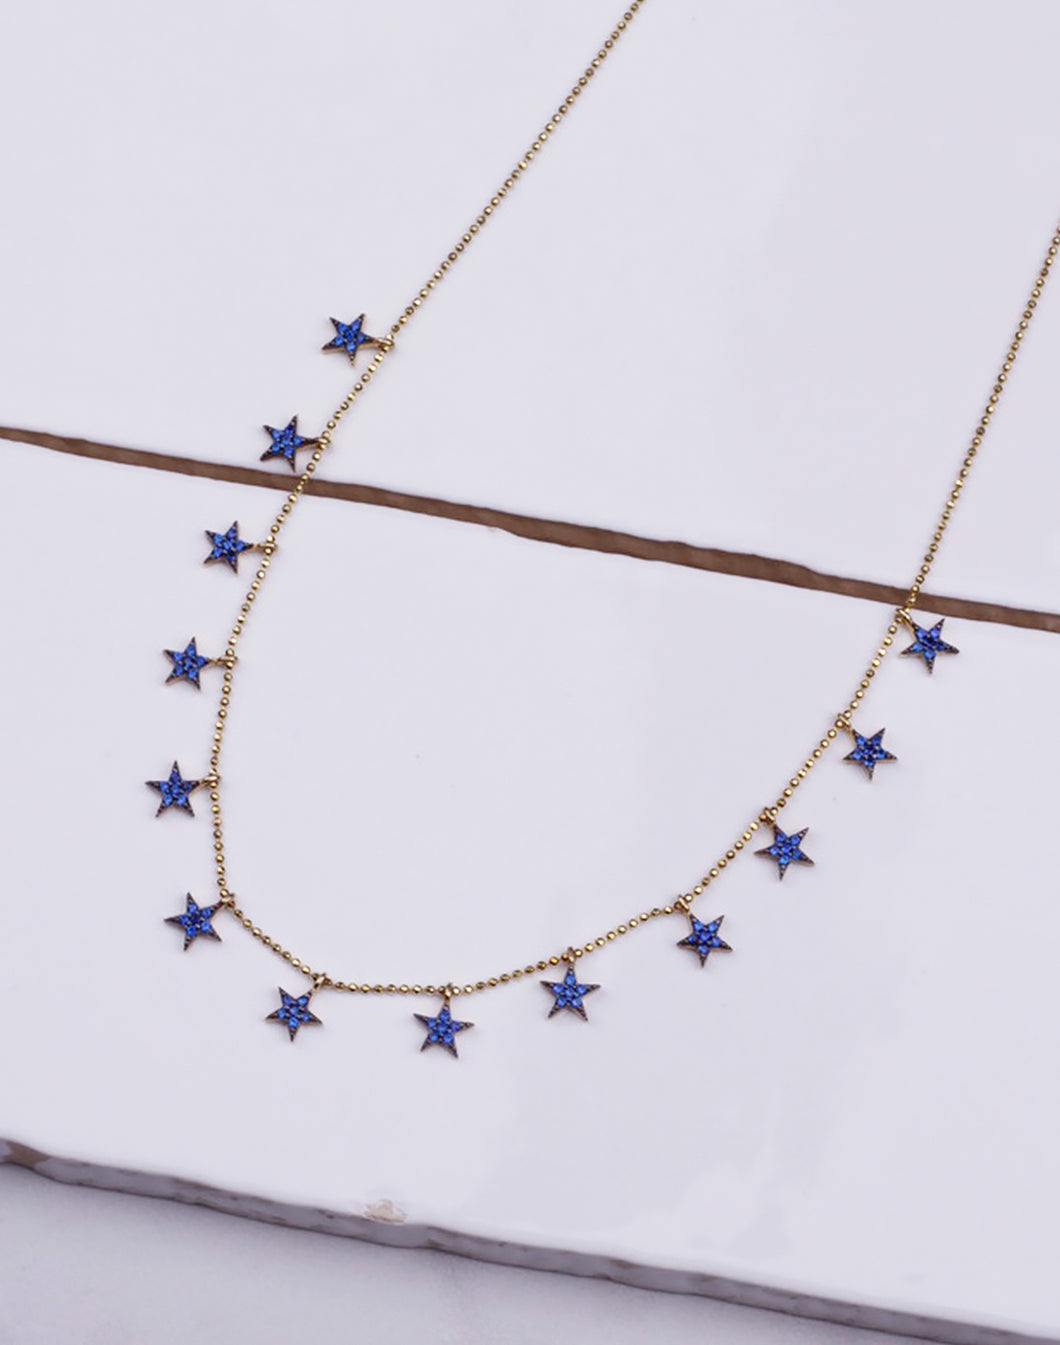 Blue CZ Star Beaded Necklace